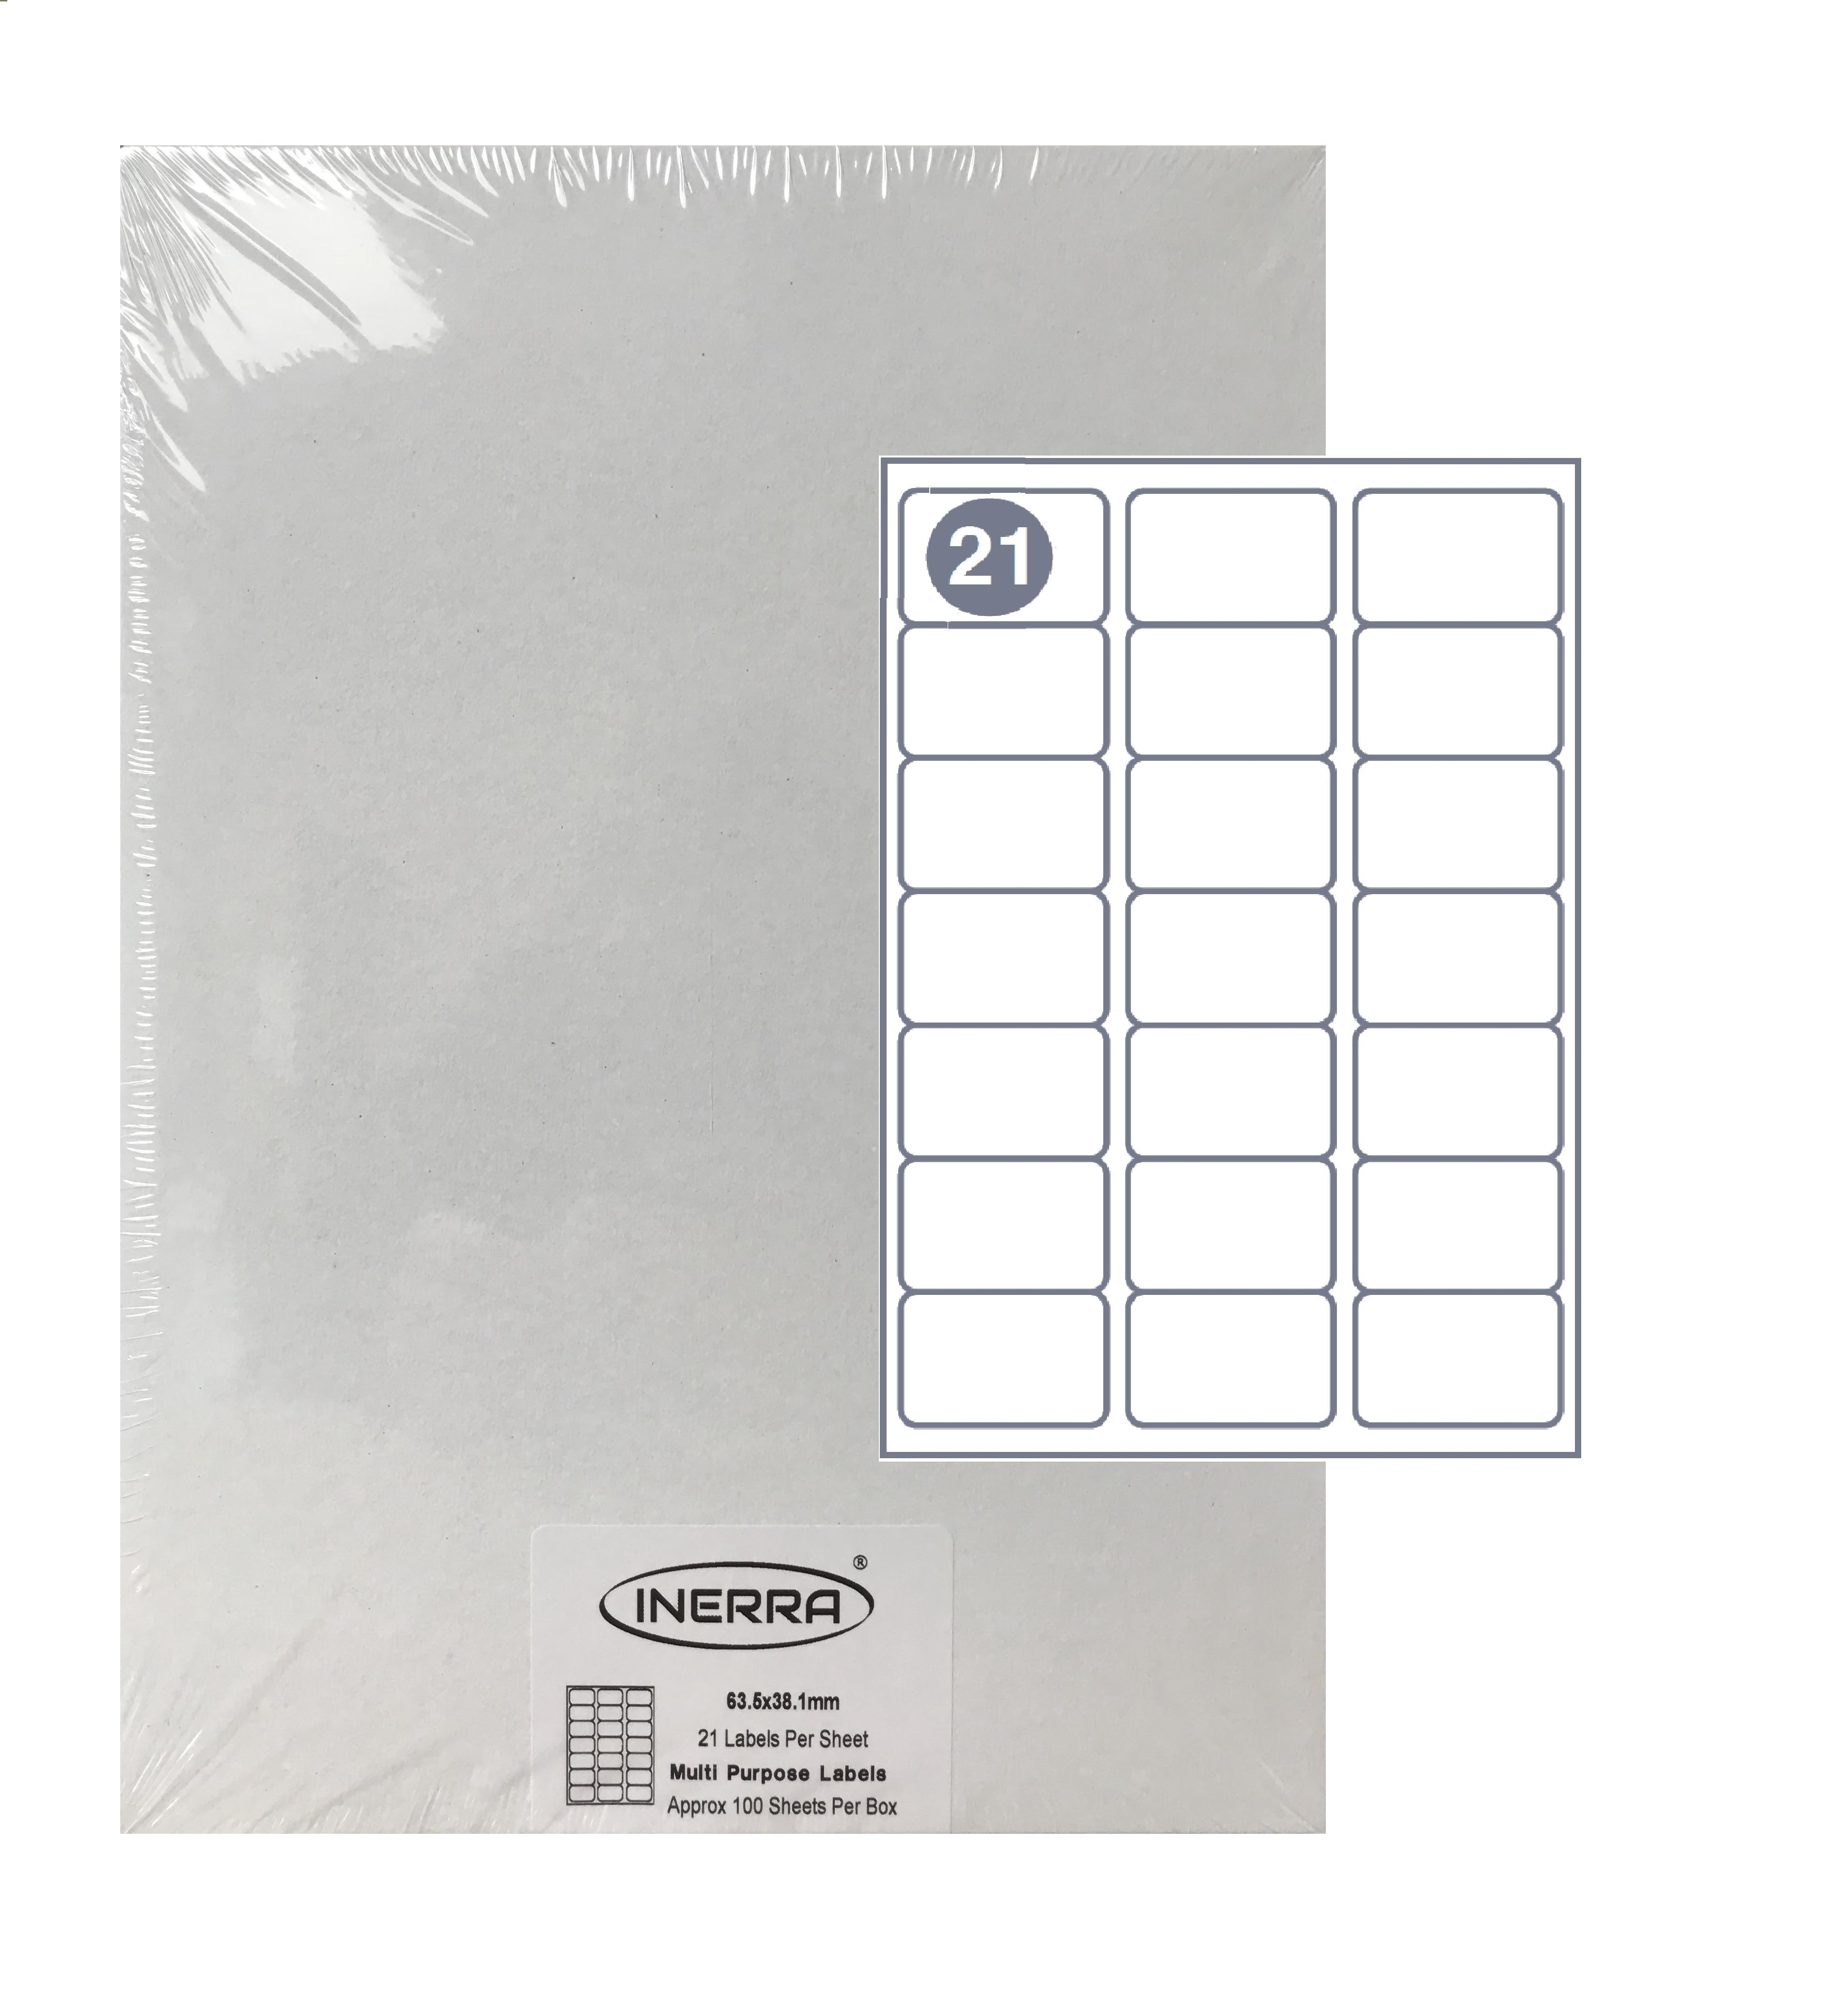 Free Template for INERRA Blank Labels - 21 Per Sheet Throughout Word Label Template 12 Per Sheet